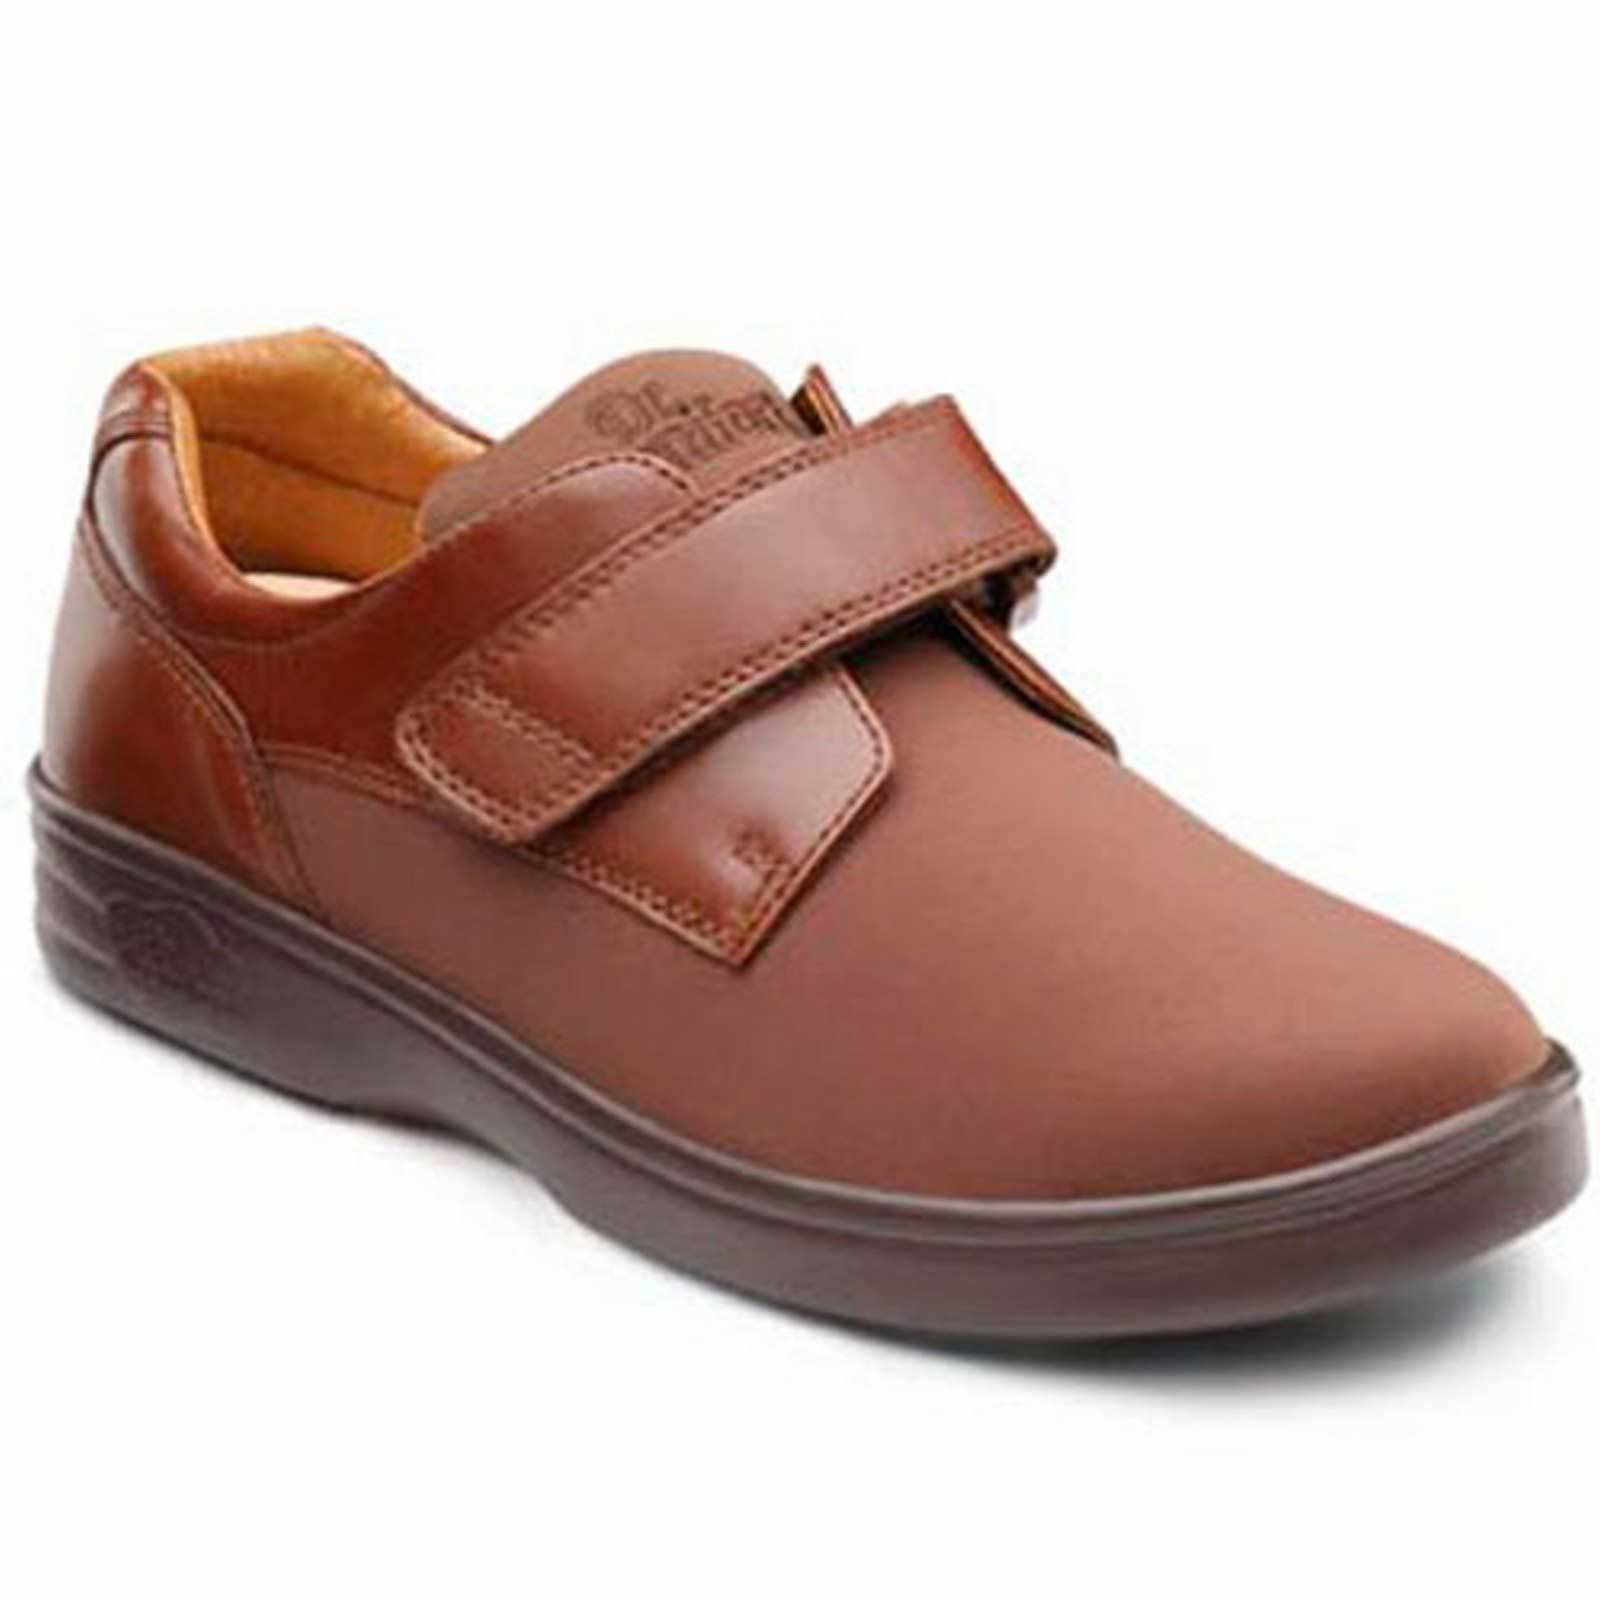 Dr. Comfort - Annie - -Acorn - Casual, Medical